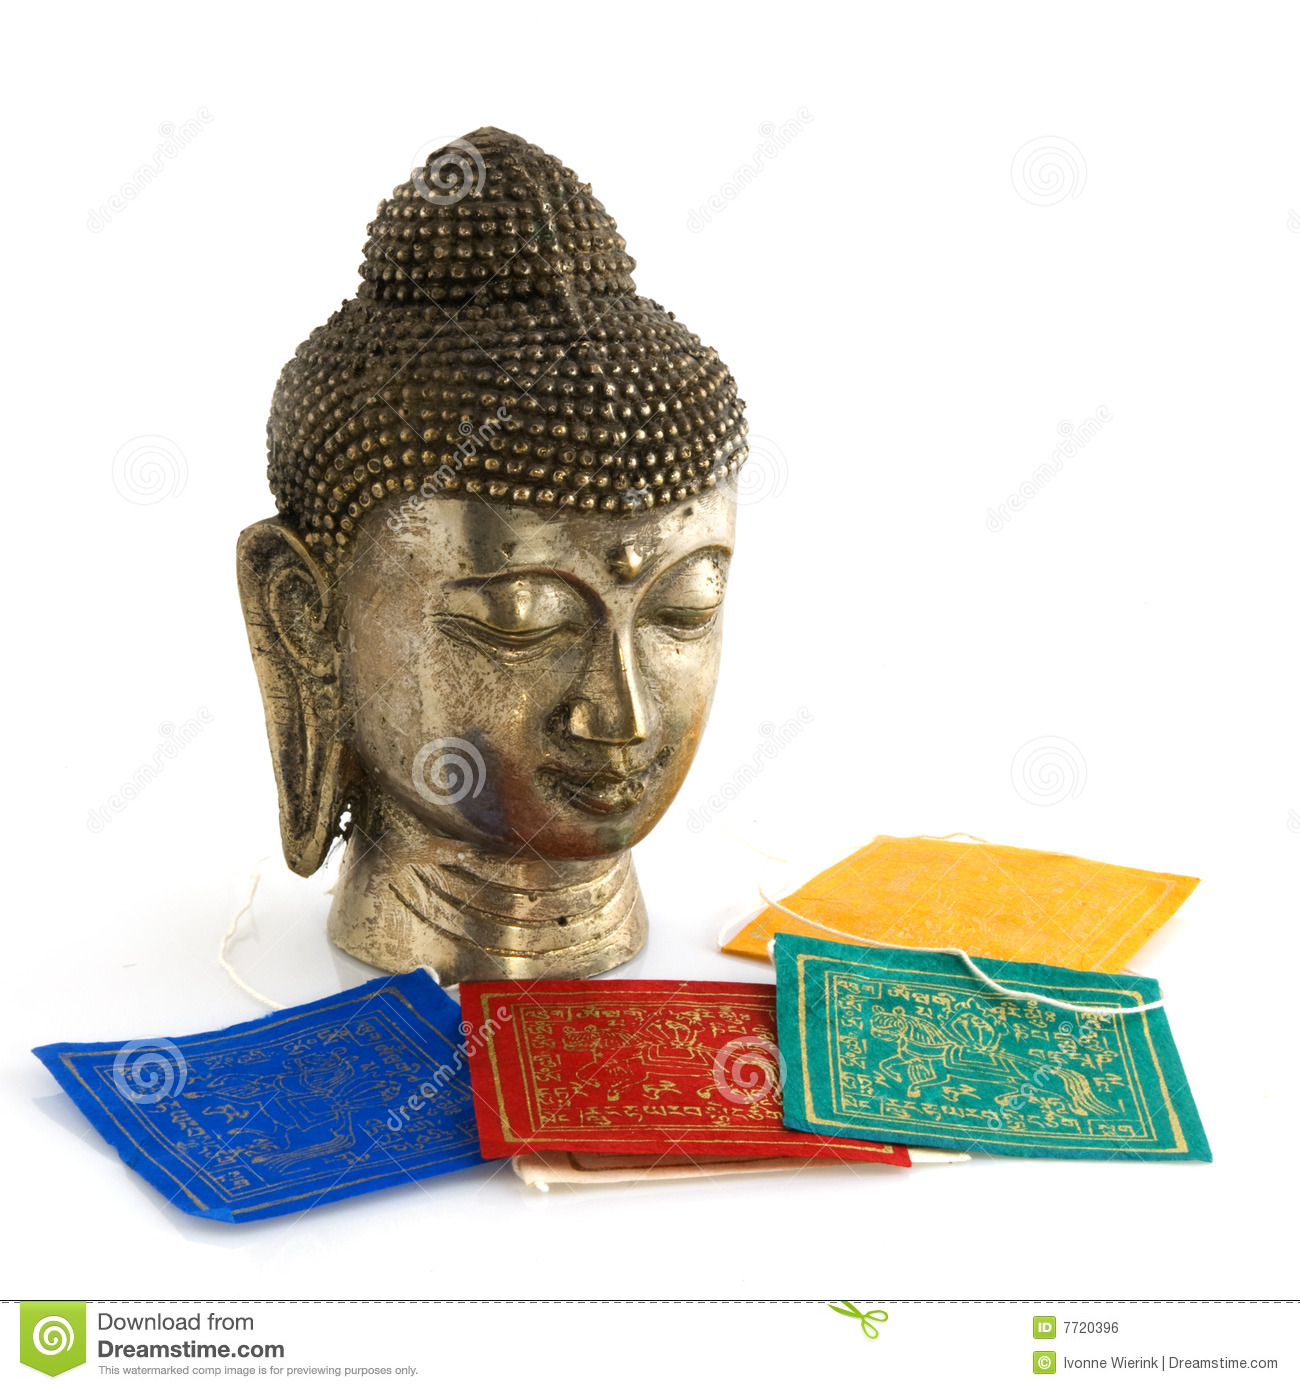 Objetos do Buddhism